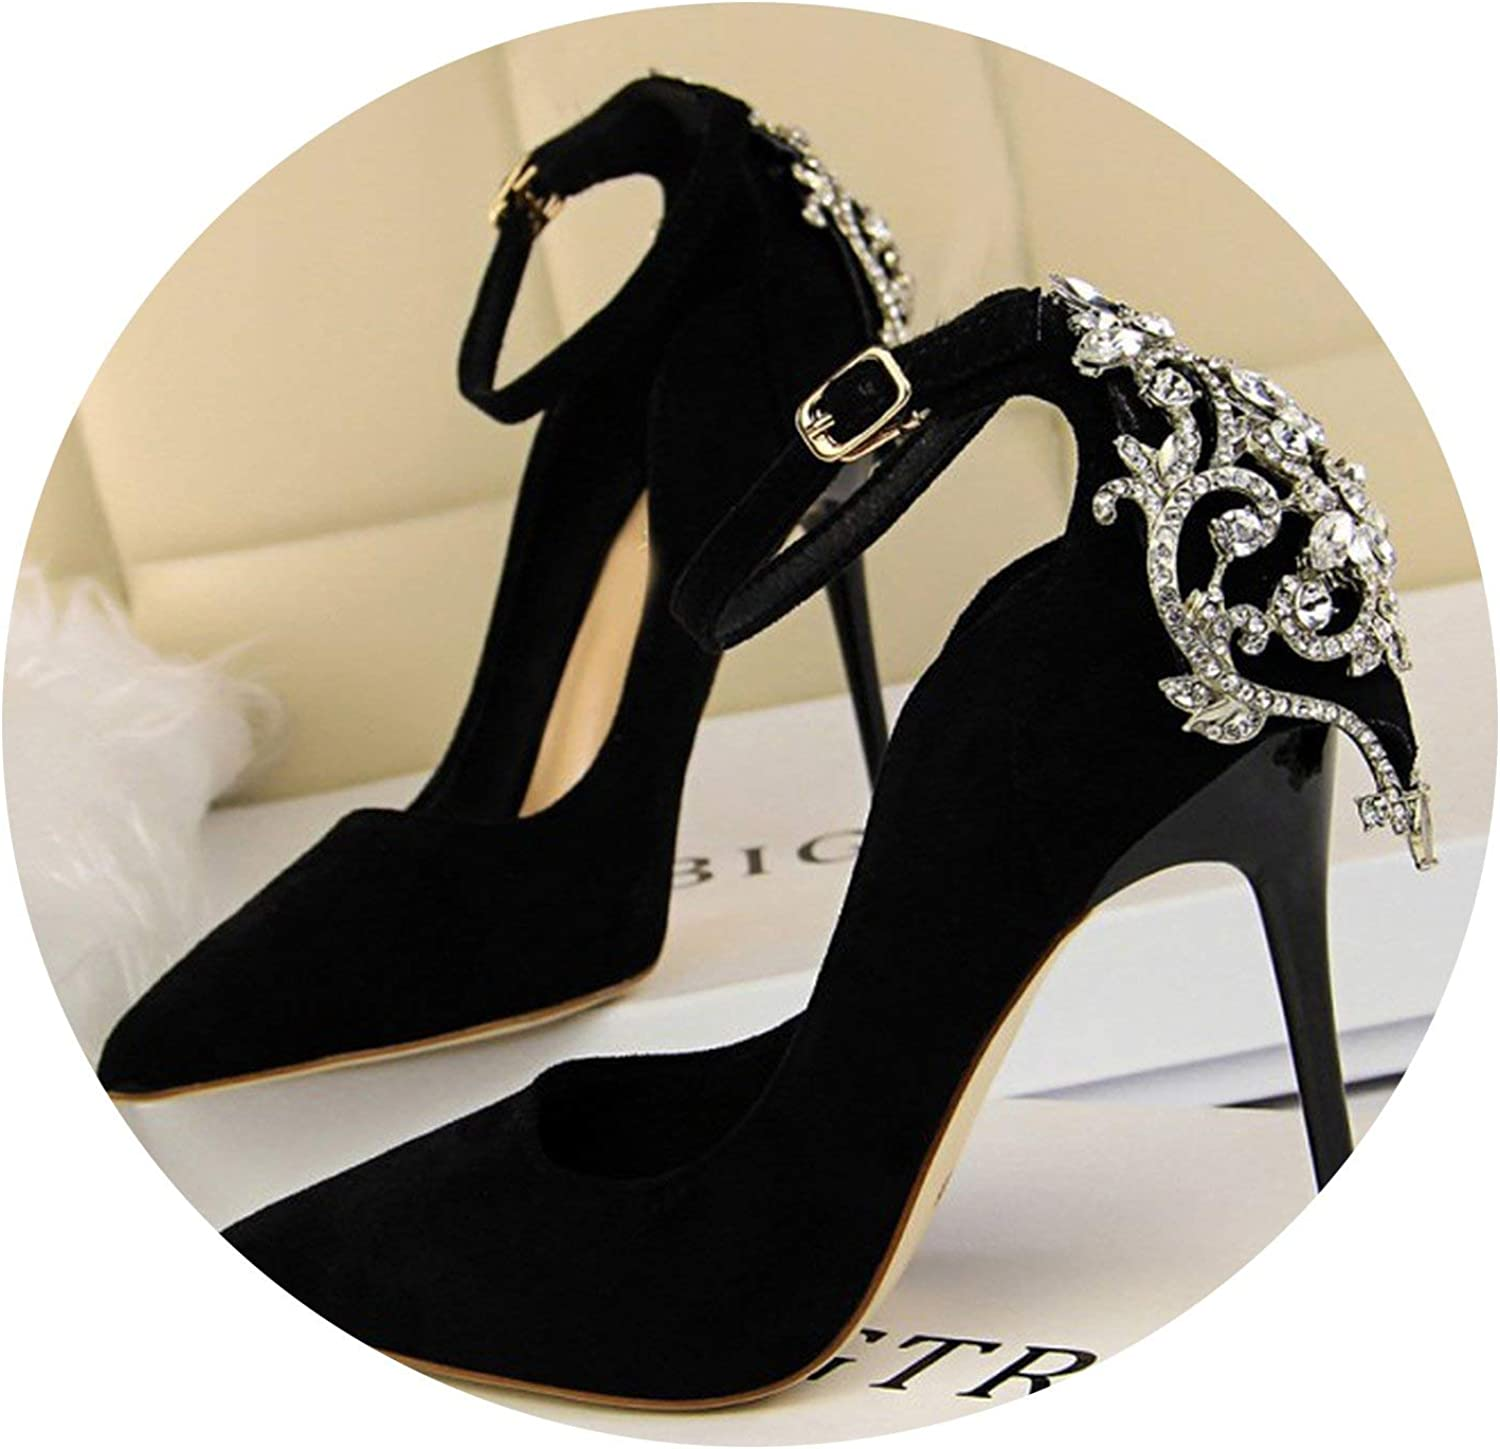 Mr Z Waroom Women's High Heels shoes Crystal Buckle Sexy Women Shallow Pumps Thin Heels Pointed Toe Party Nightclub Pumps